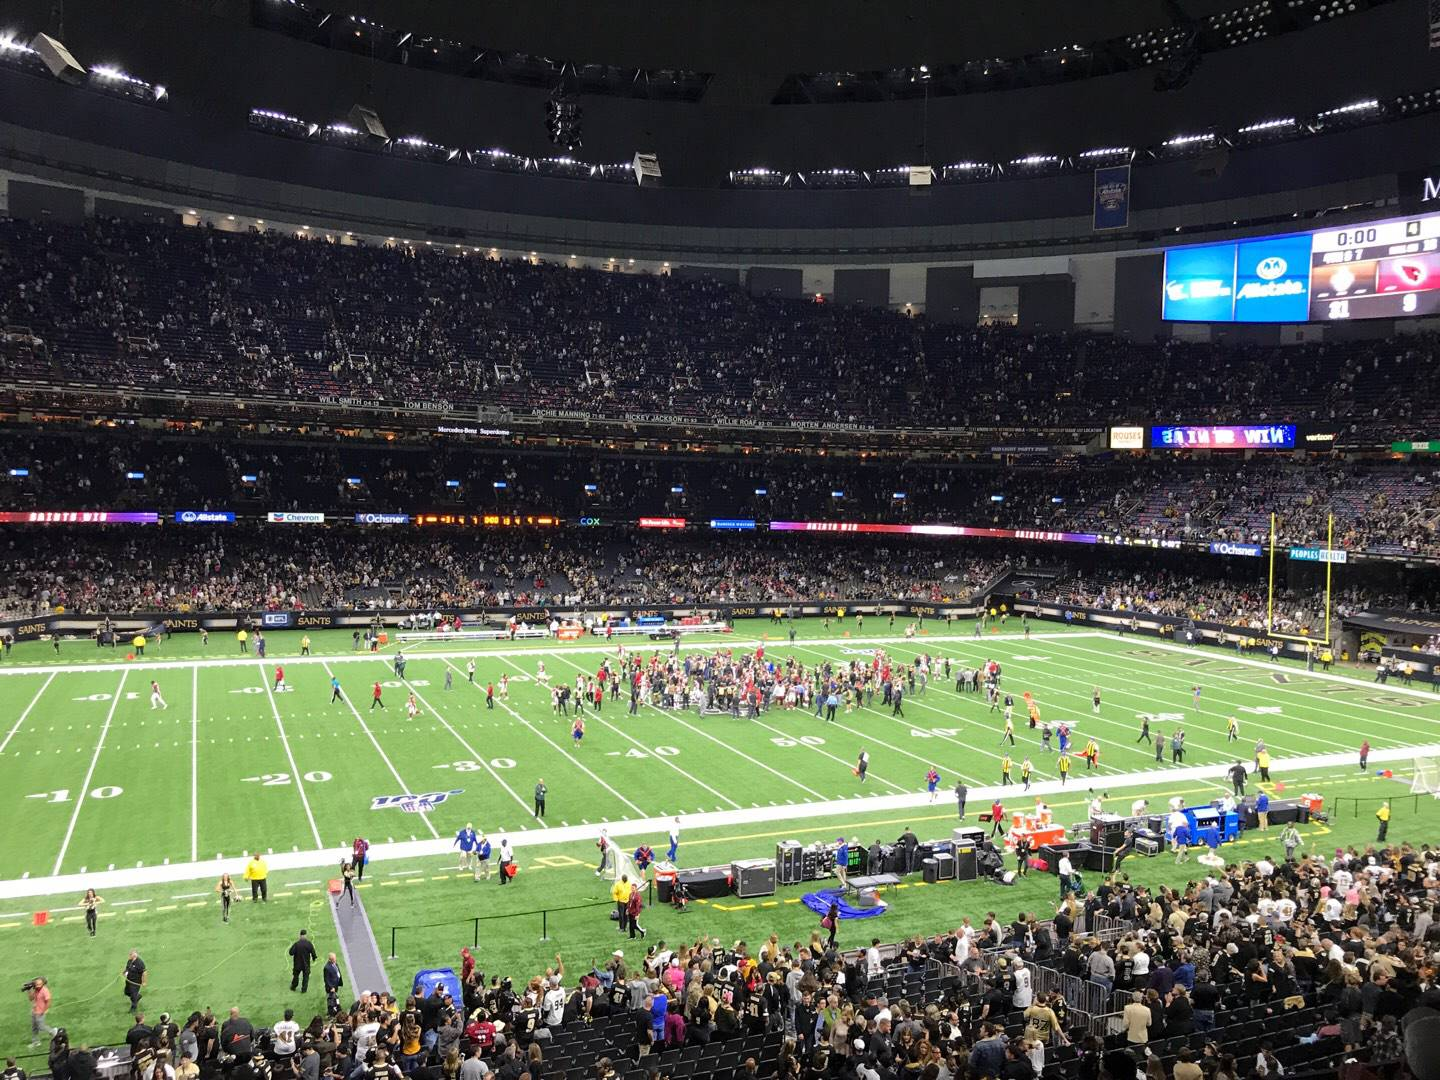 Mercedes-Benz Superdome Section 339 Row 9 Seat 7